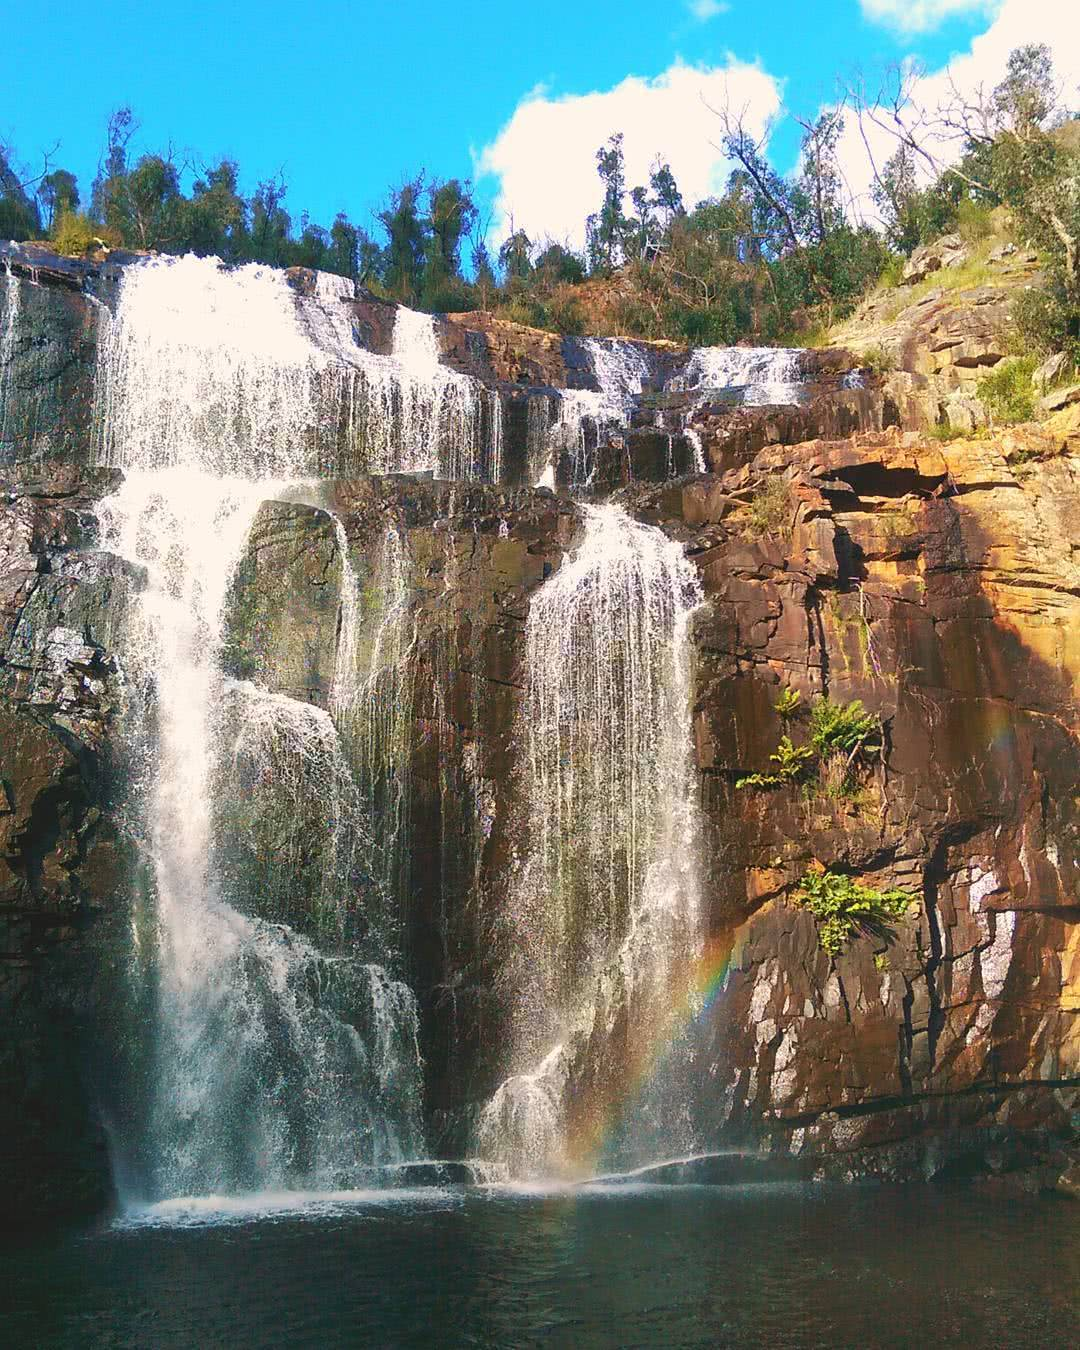 MacKenzie Falls drmostarac instagram 8 Ridiculously Beautiful Victorian Waterfalls To Chase This Summer Pat Corden, waterfall, rainbow